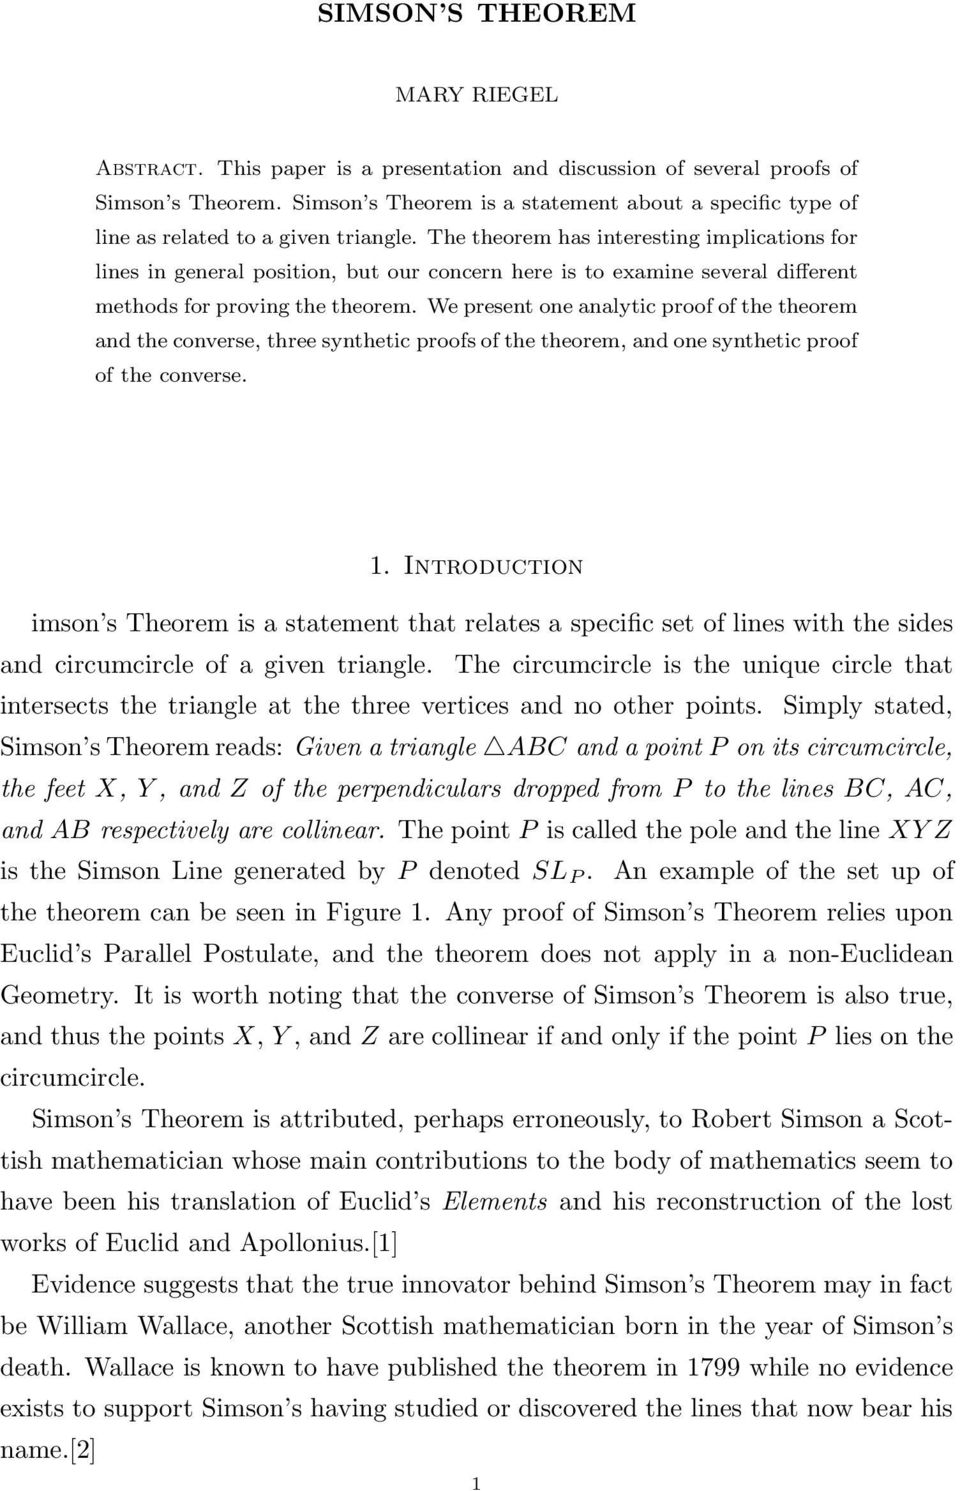 The theorem has interesting implications for lines in general position, but our concern here is to examine several different methods for proving the theorem.